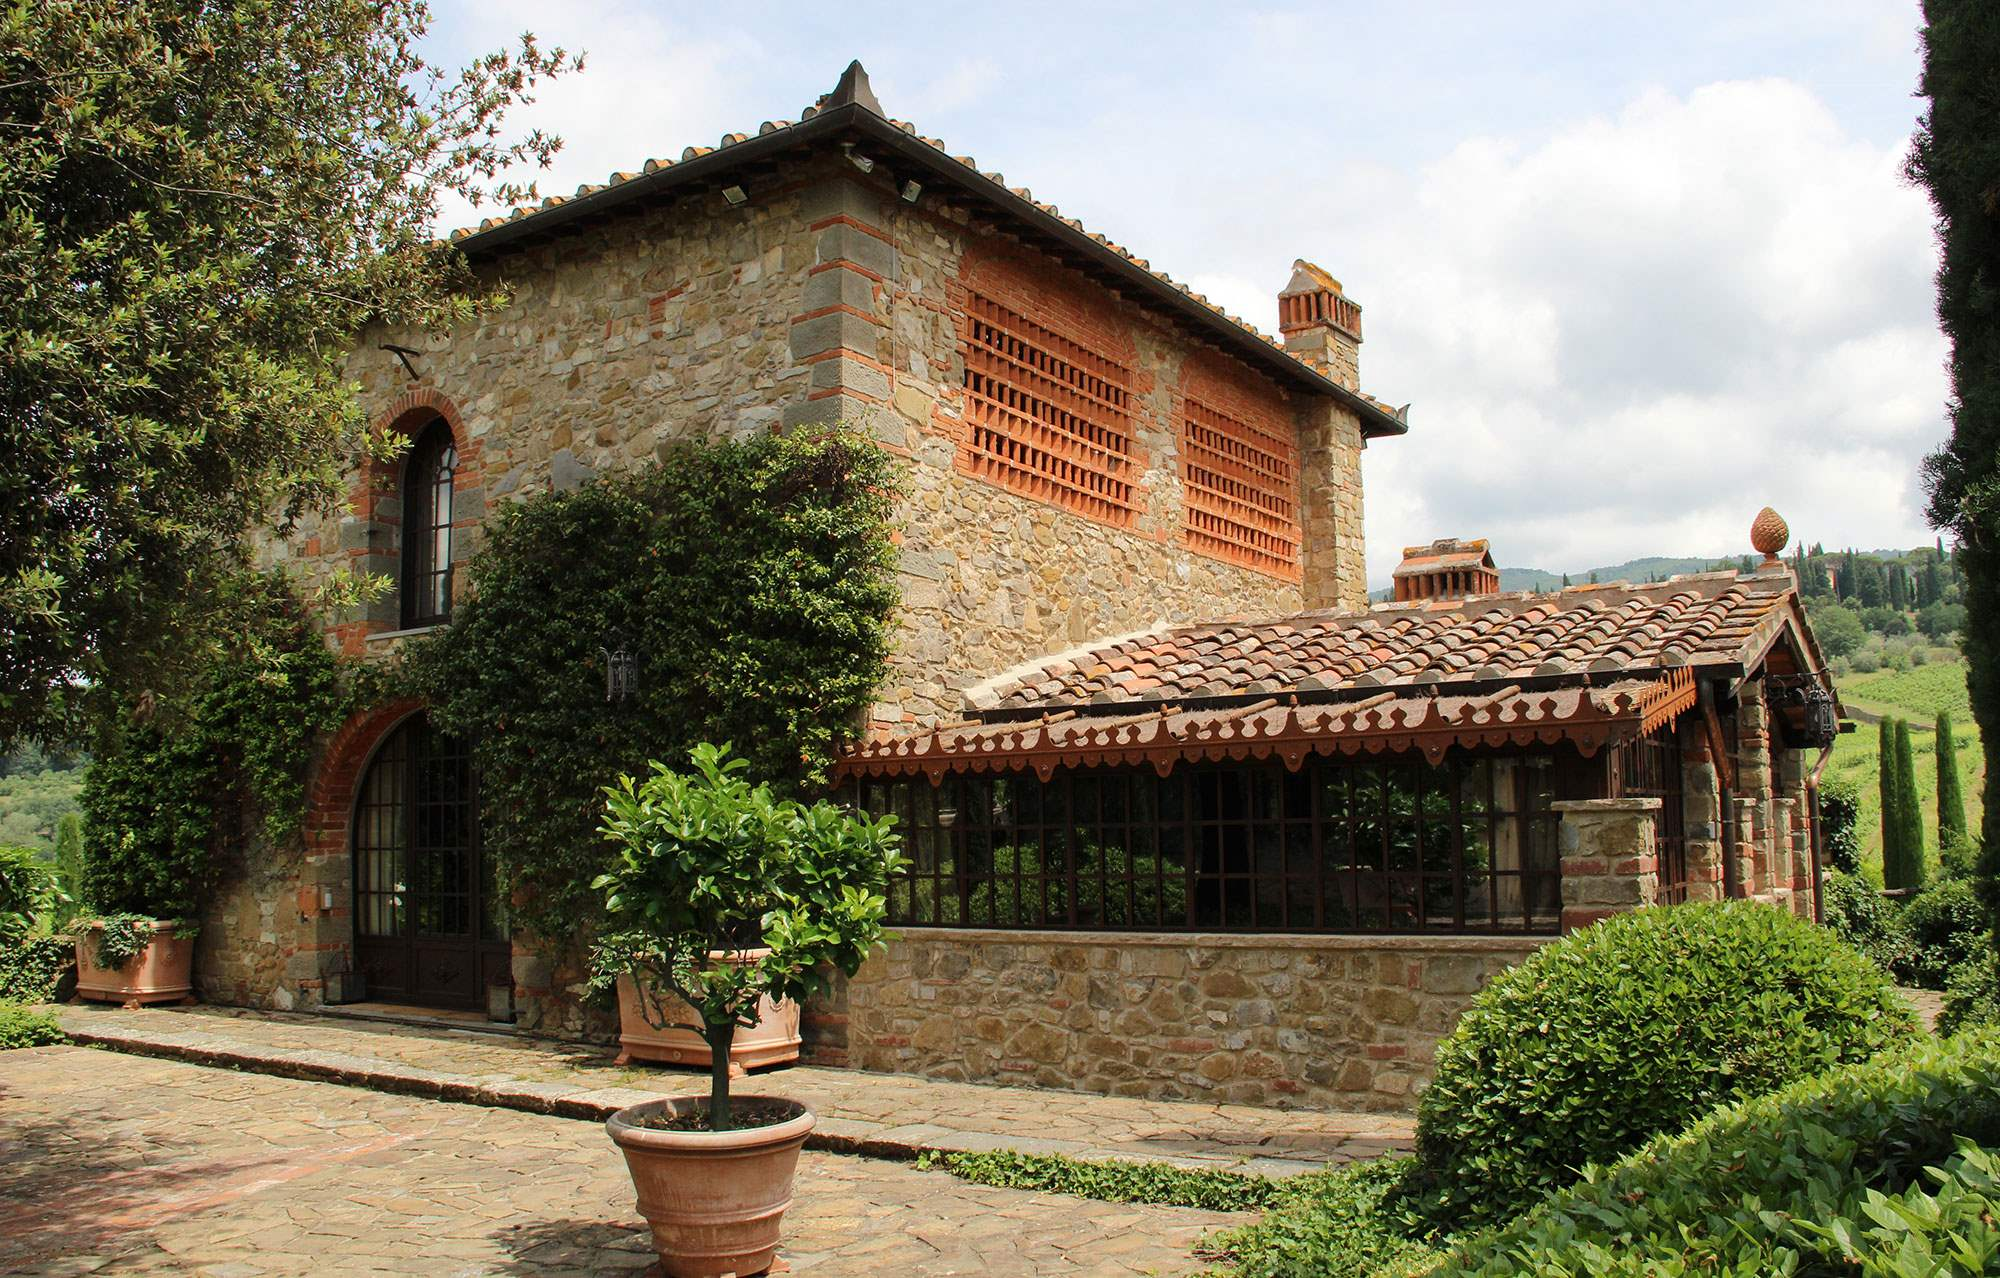 Villa Tuscan, 6 (+2), 3 bedroom villa in Chianti & Countryside, Tuscany Photo #15